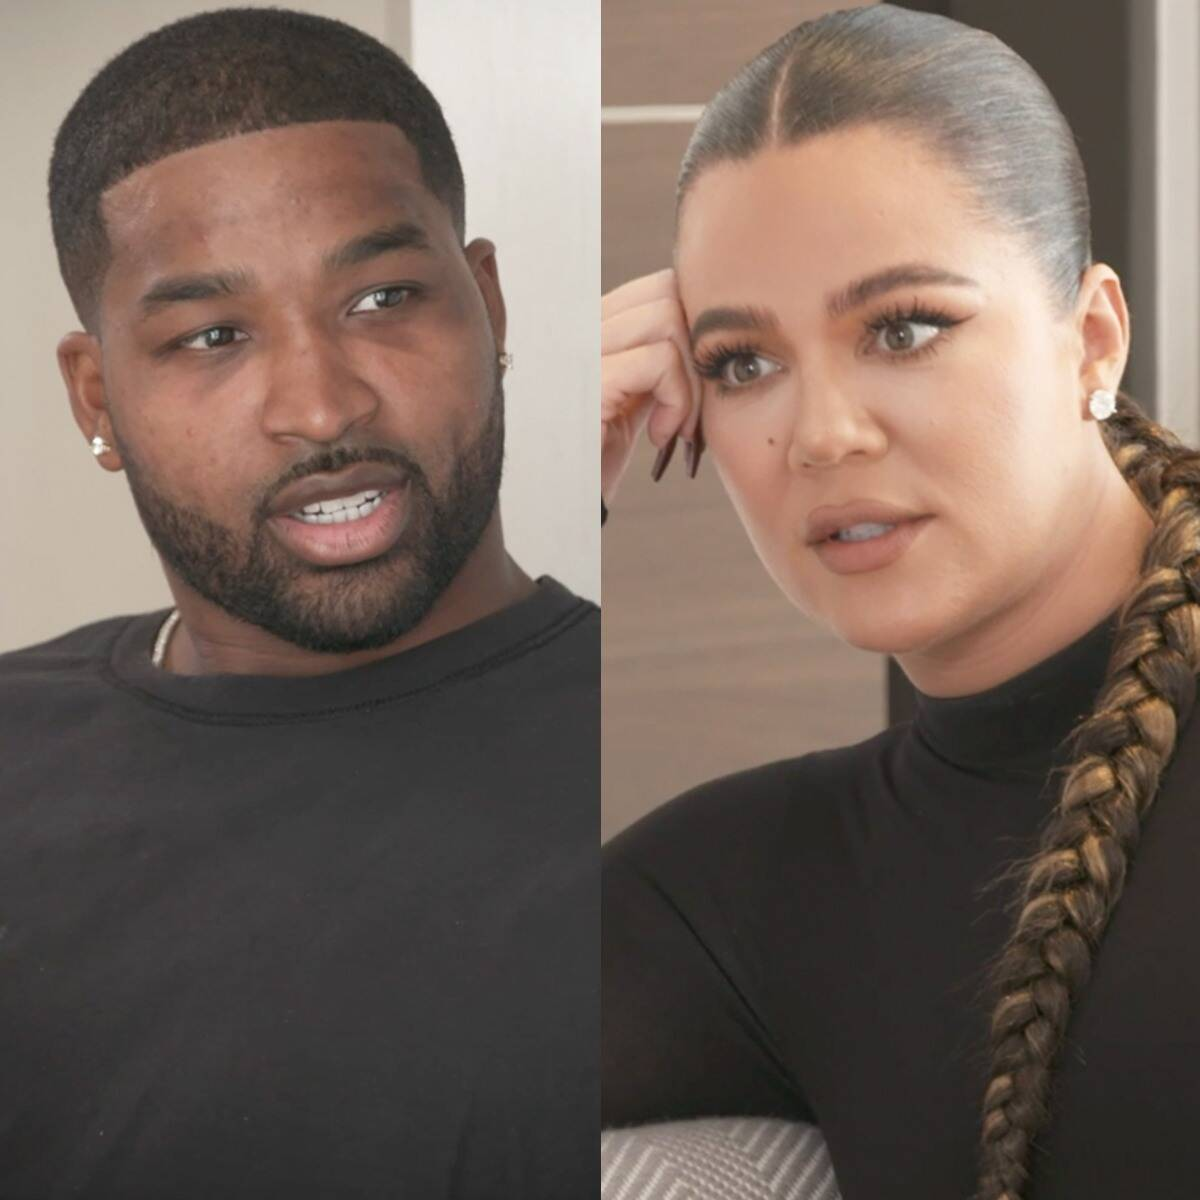 Khloe Kardashian And Tristan Thompson Talk Surrogacy In New Teaser For The Final KUWTK Season!